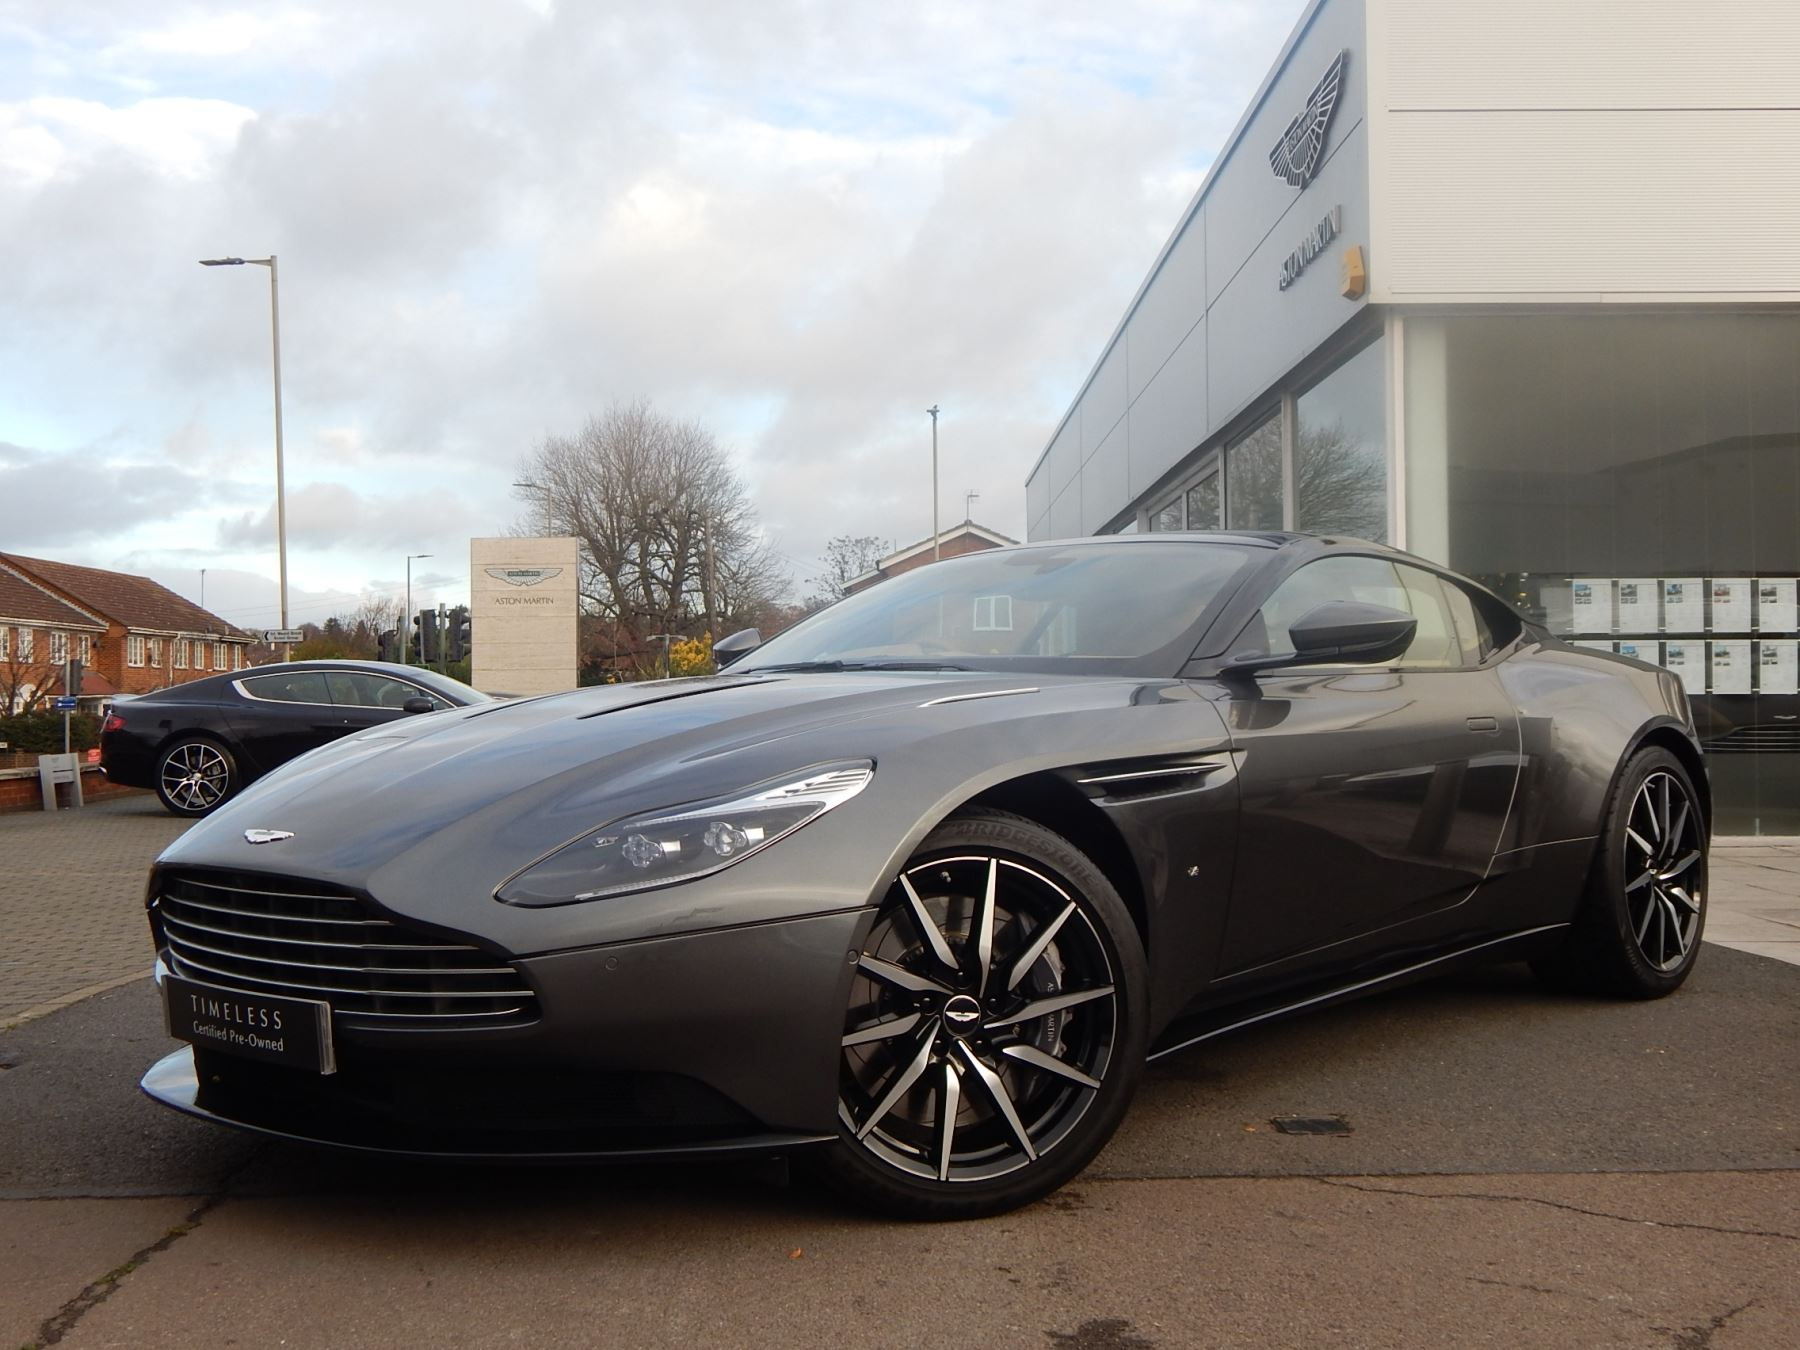 Aston Martin DB11 V12 2dr Touchtronic Launch Edition 5.2 Automatic Coupe (2017) image